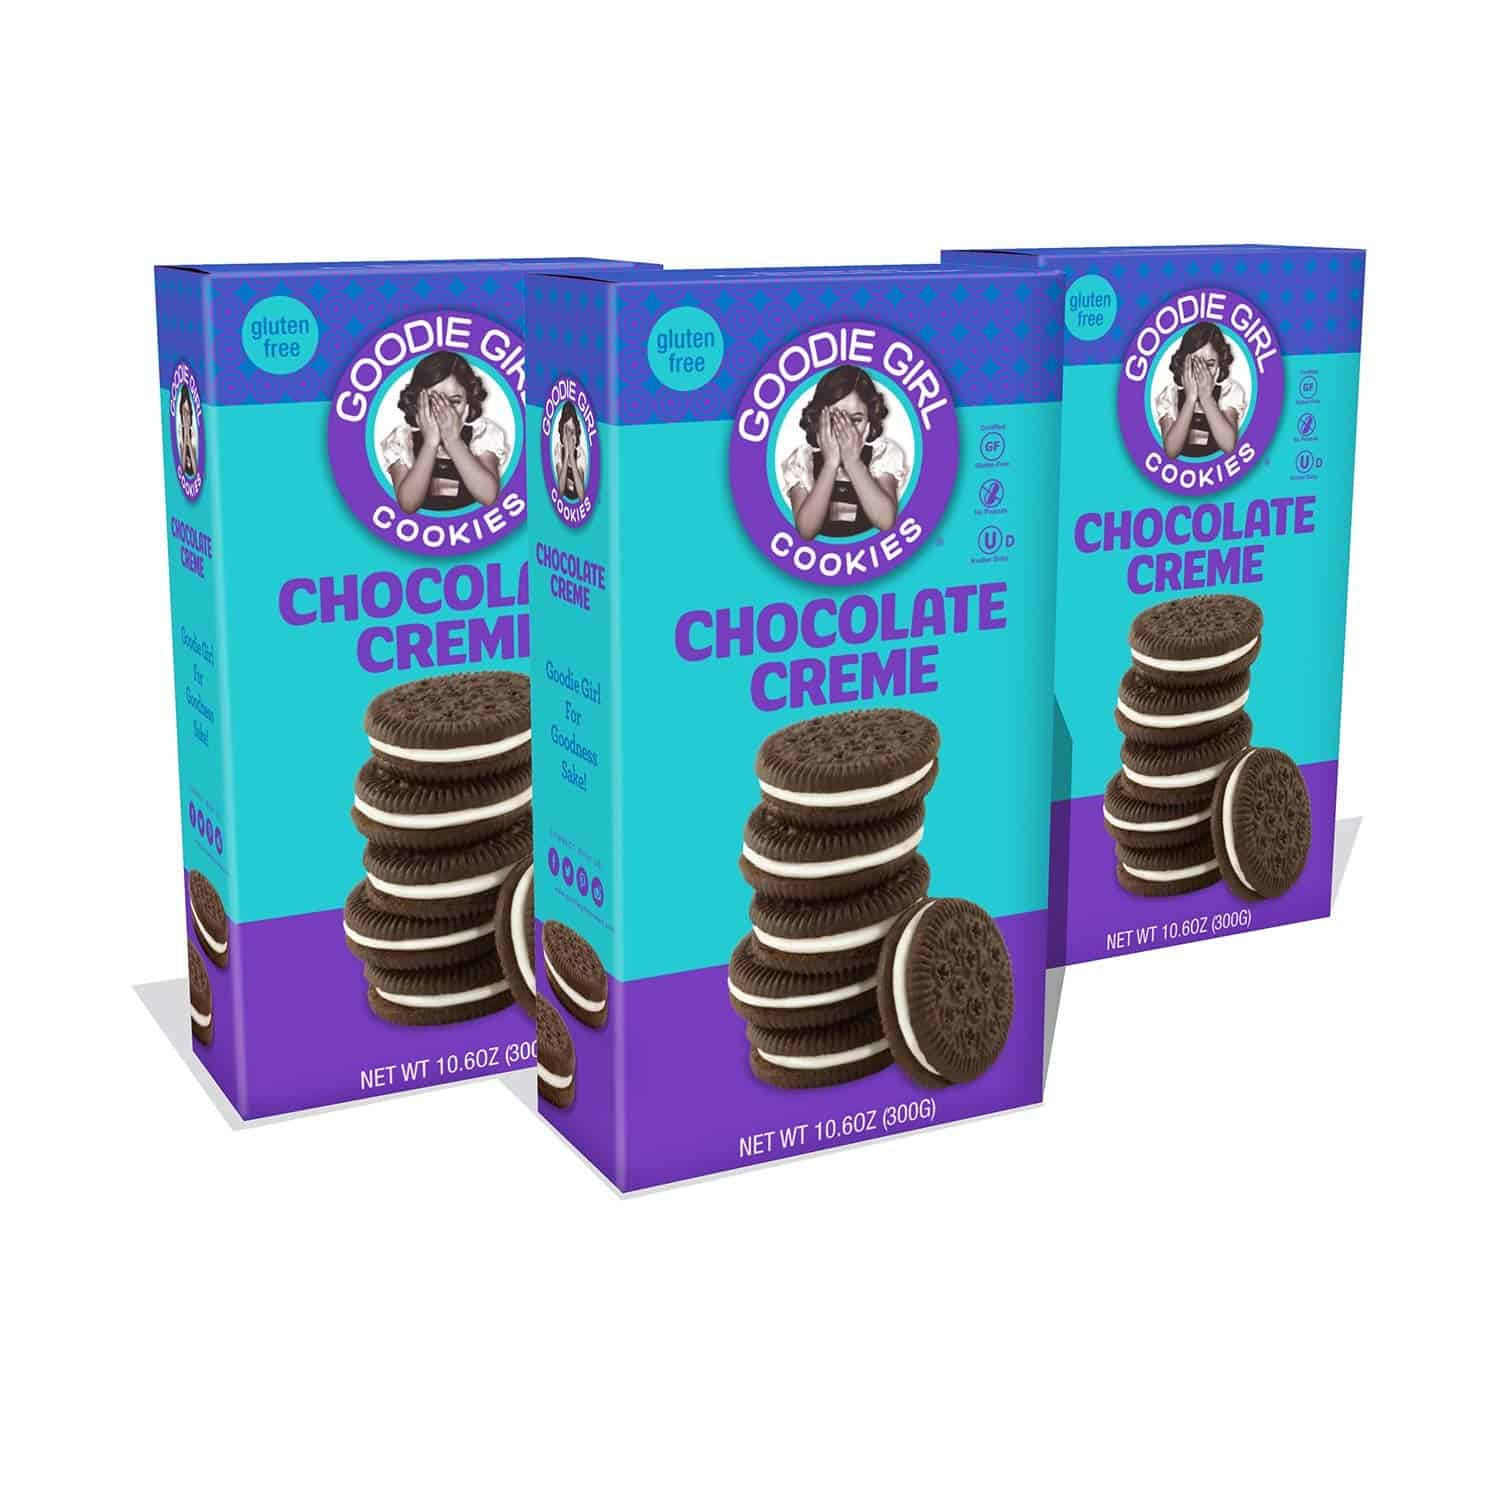 Goodie Girl Gluten Free Cookies, Chocolate Creme